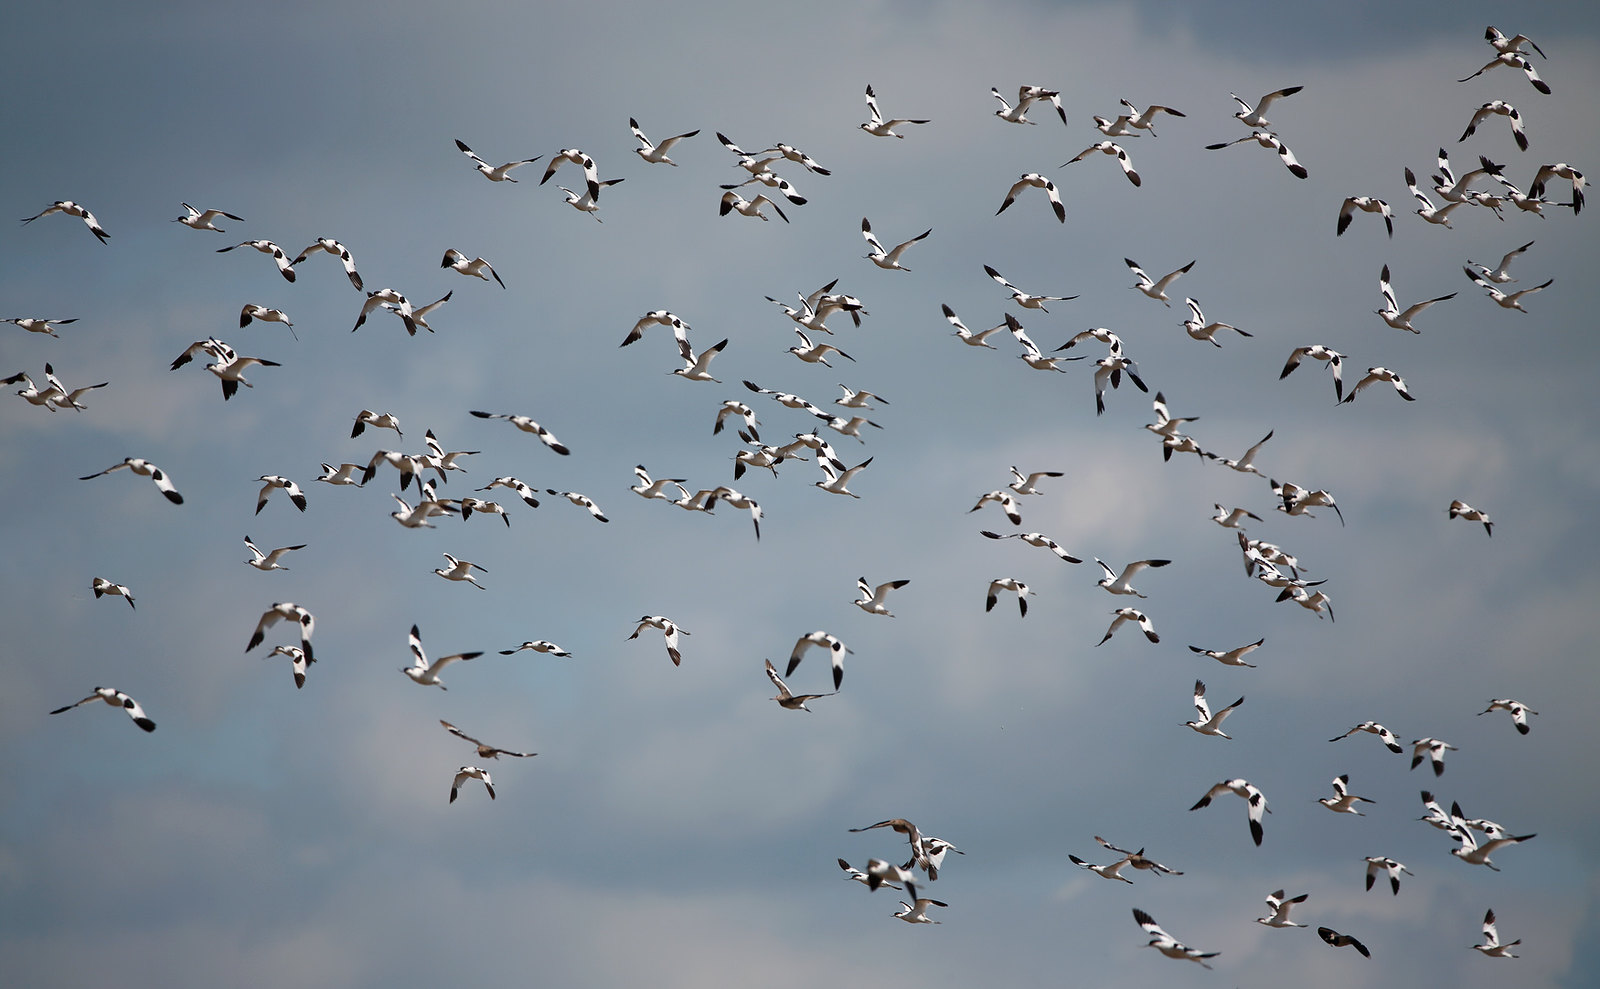 Avocets in flight